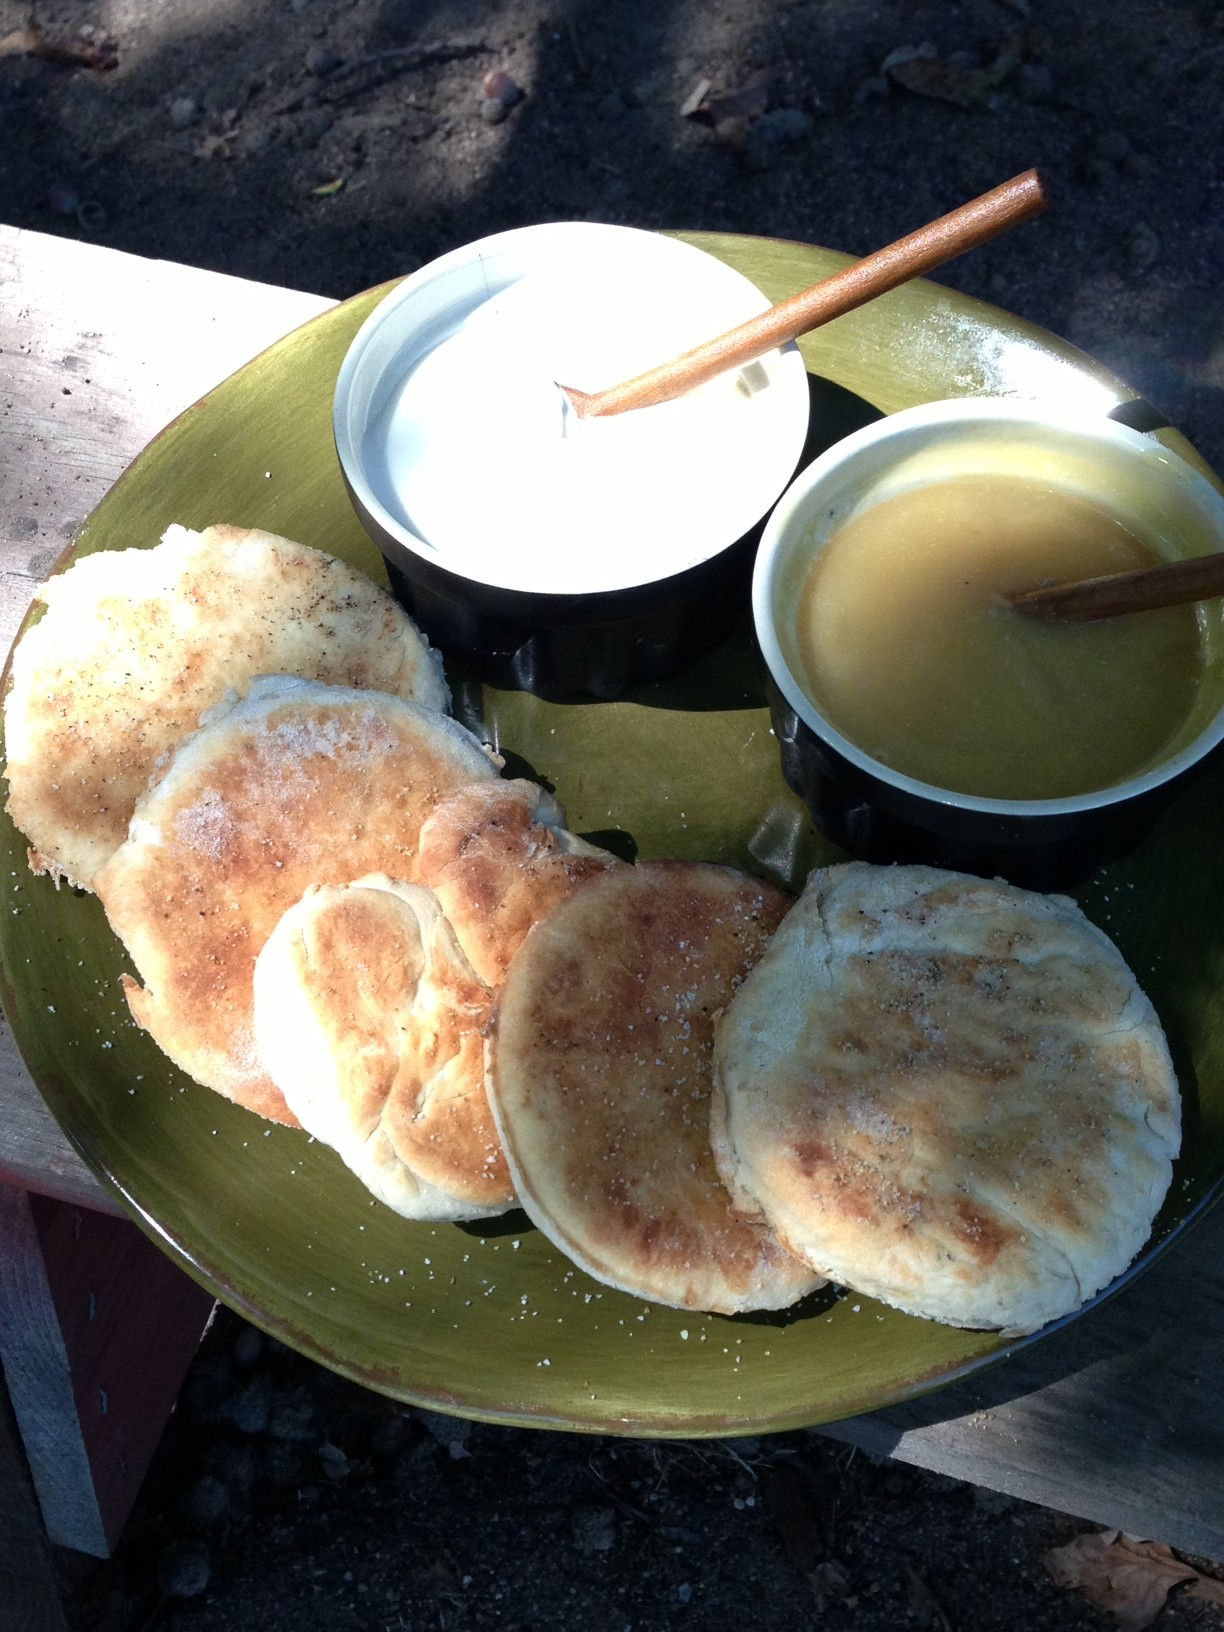 Crumpets with lemon curd and clotted cream